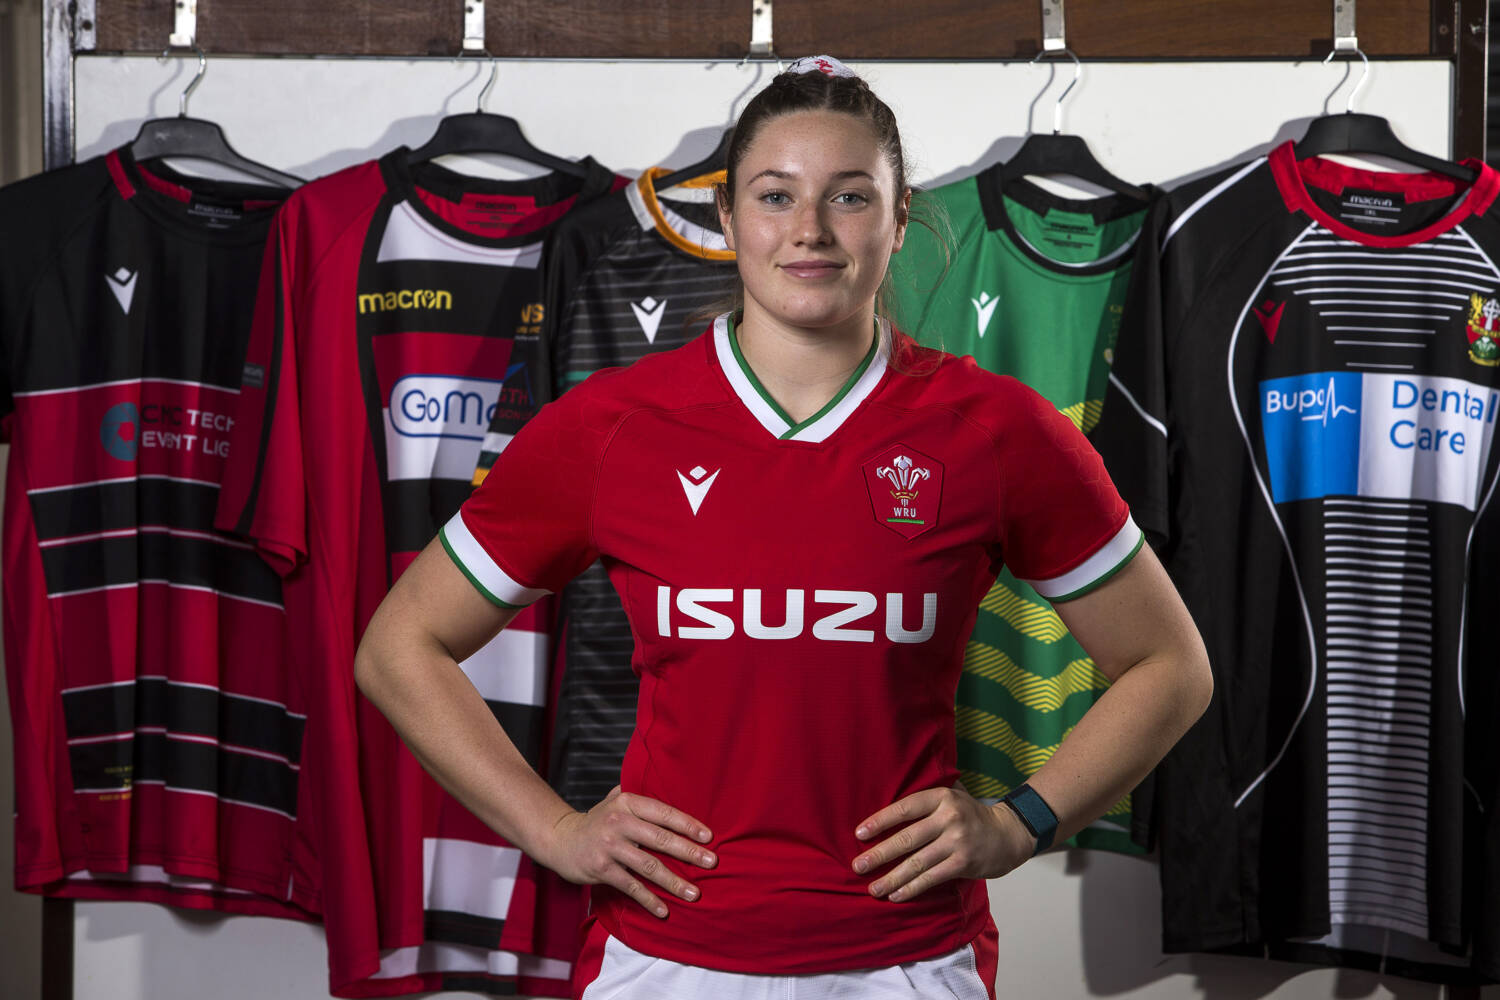 wales macron 2021 jerseys are finally here and they look like liverpool shirts but that s okay rugby shirt watch https rugbyshirtwatch com 2020 10 14 wales rugby macron 2021 shirt kit